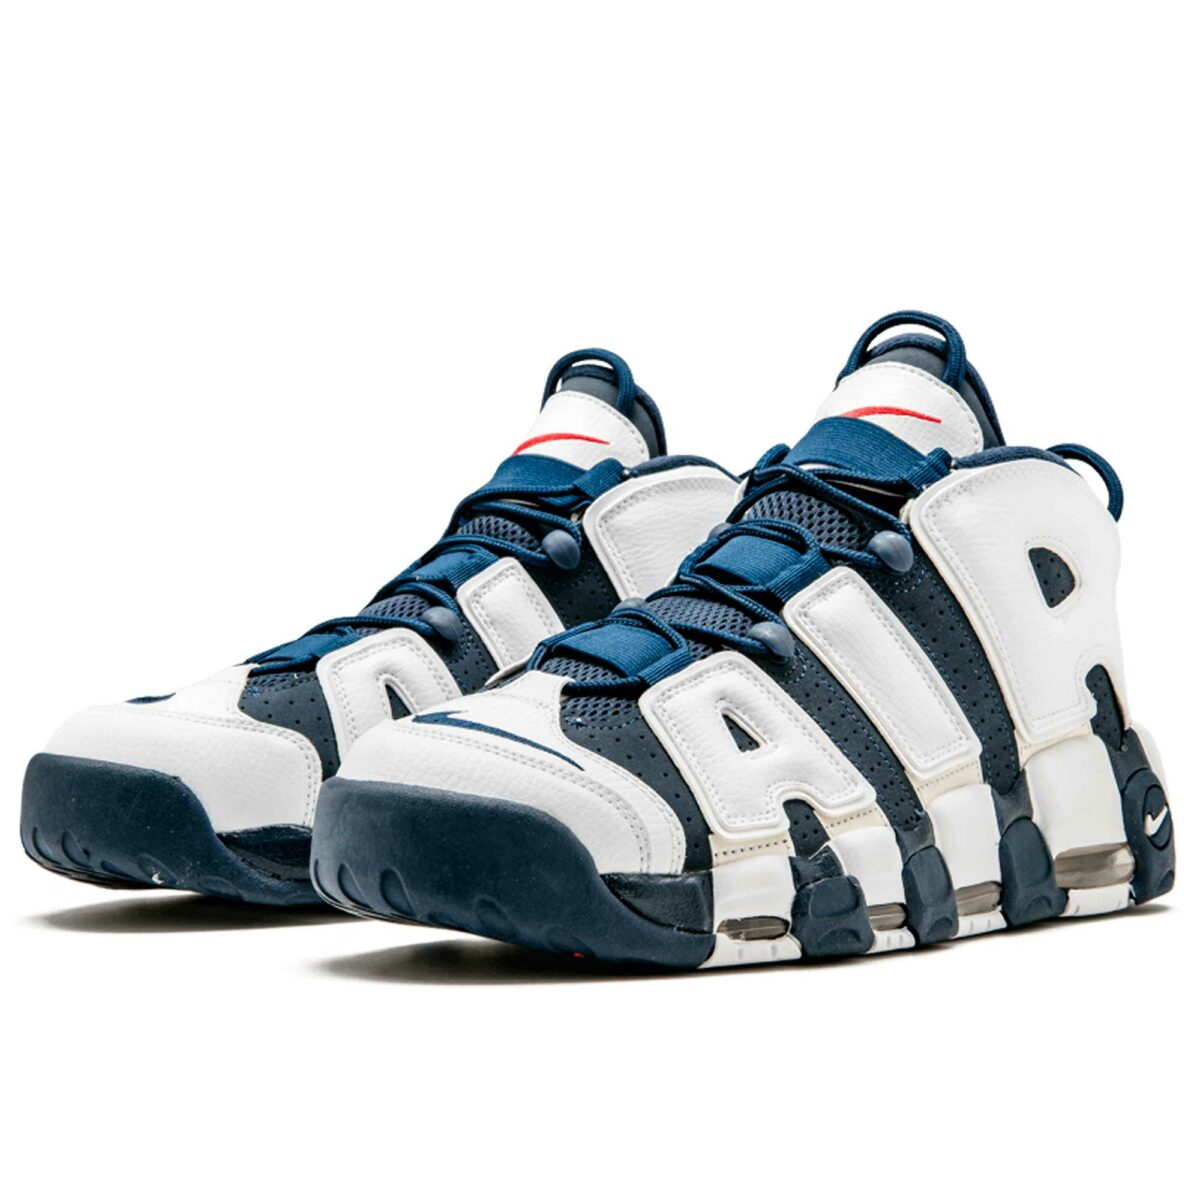 nike air more uptempo olympic 2016 release 414962 104 купить